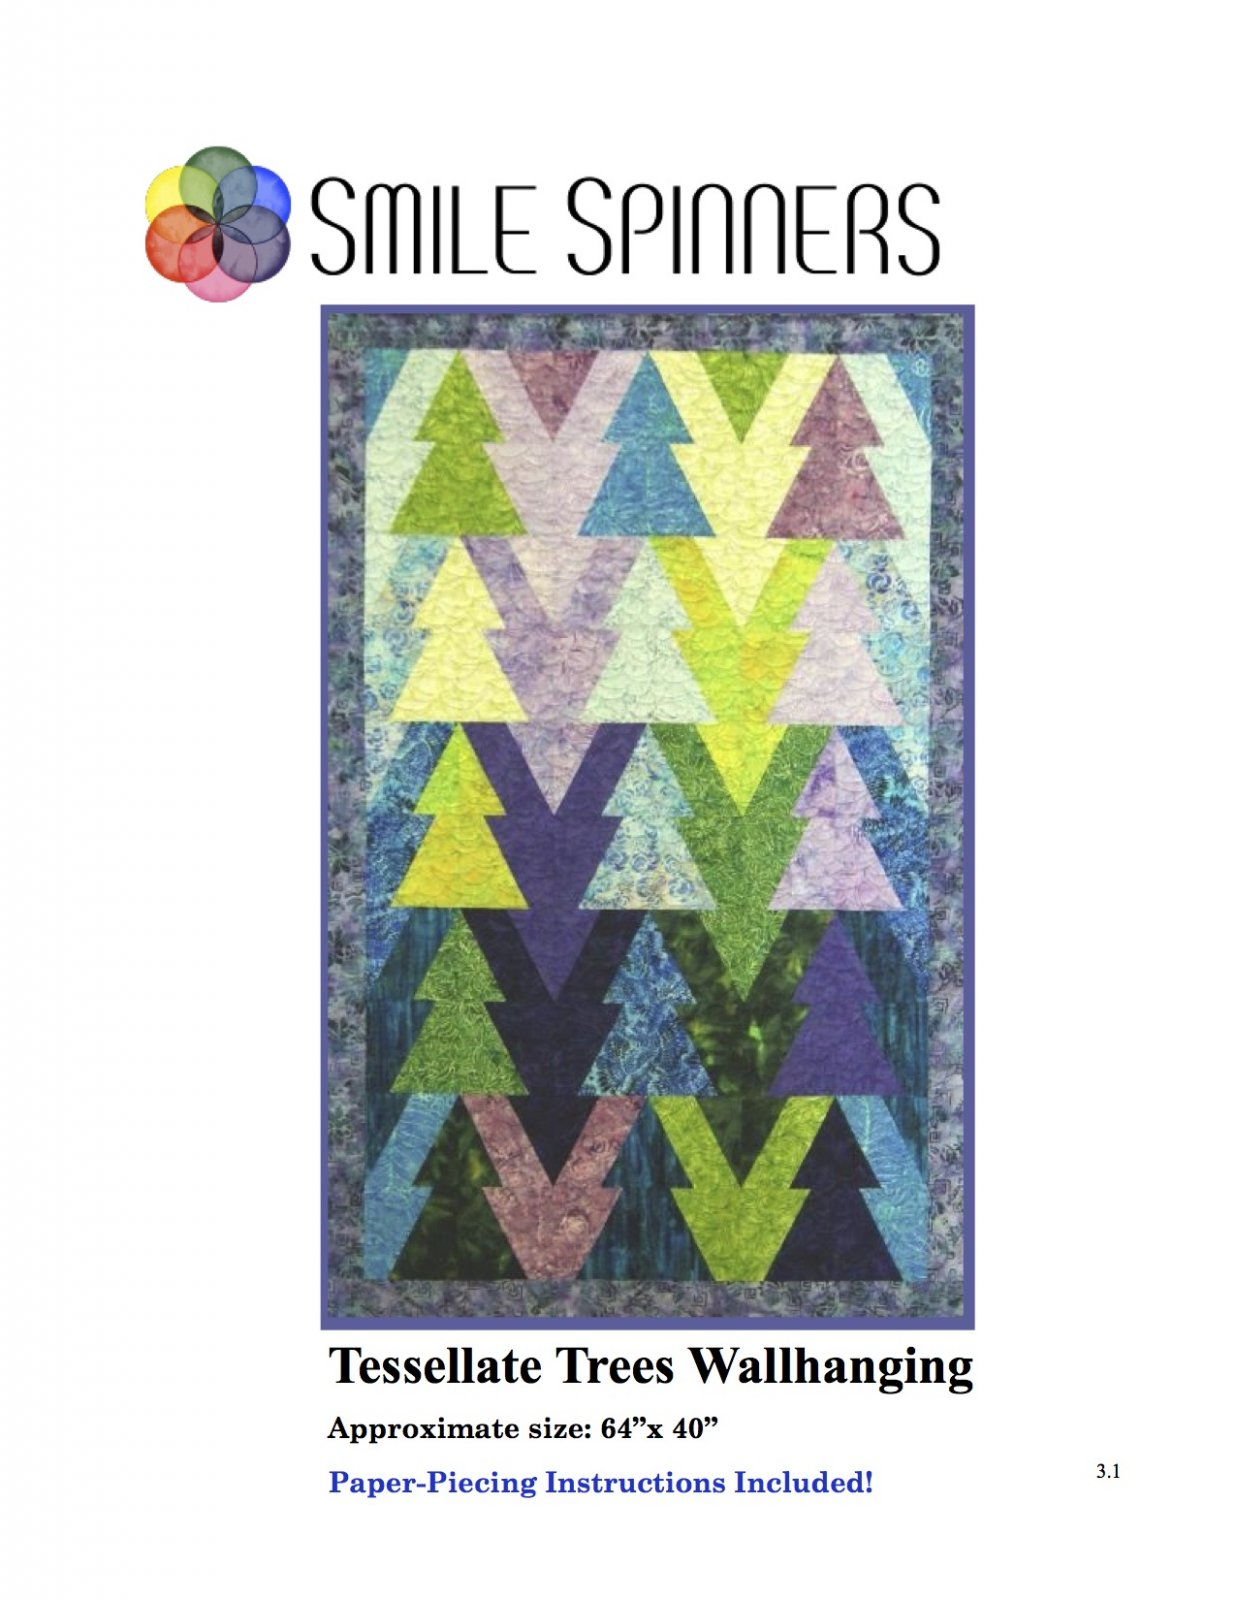 Tessellated Trees Wallhanging